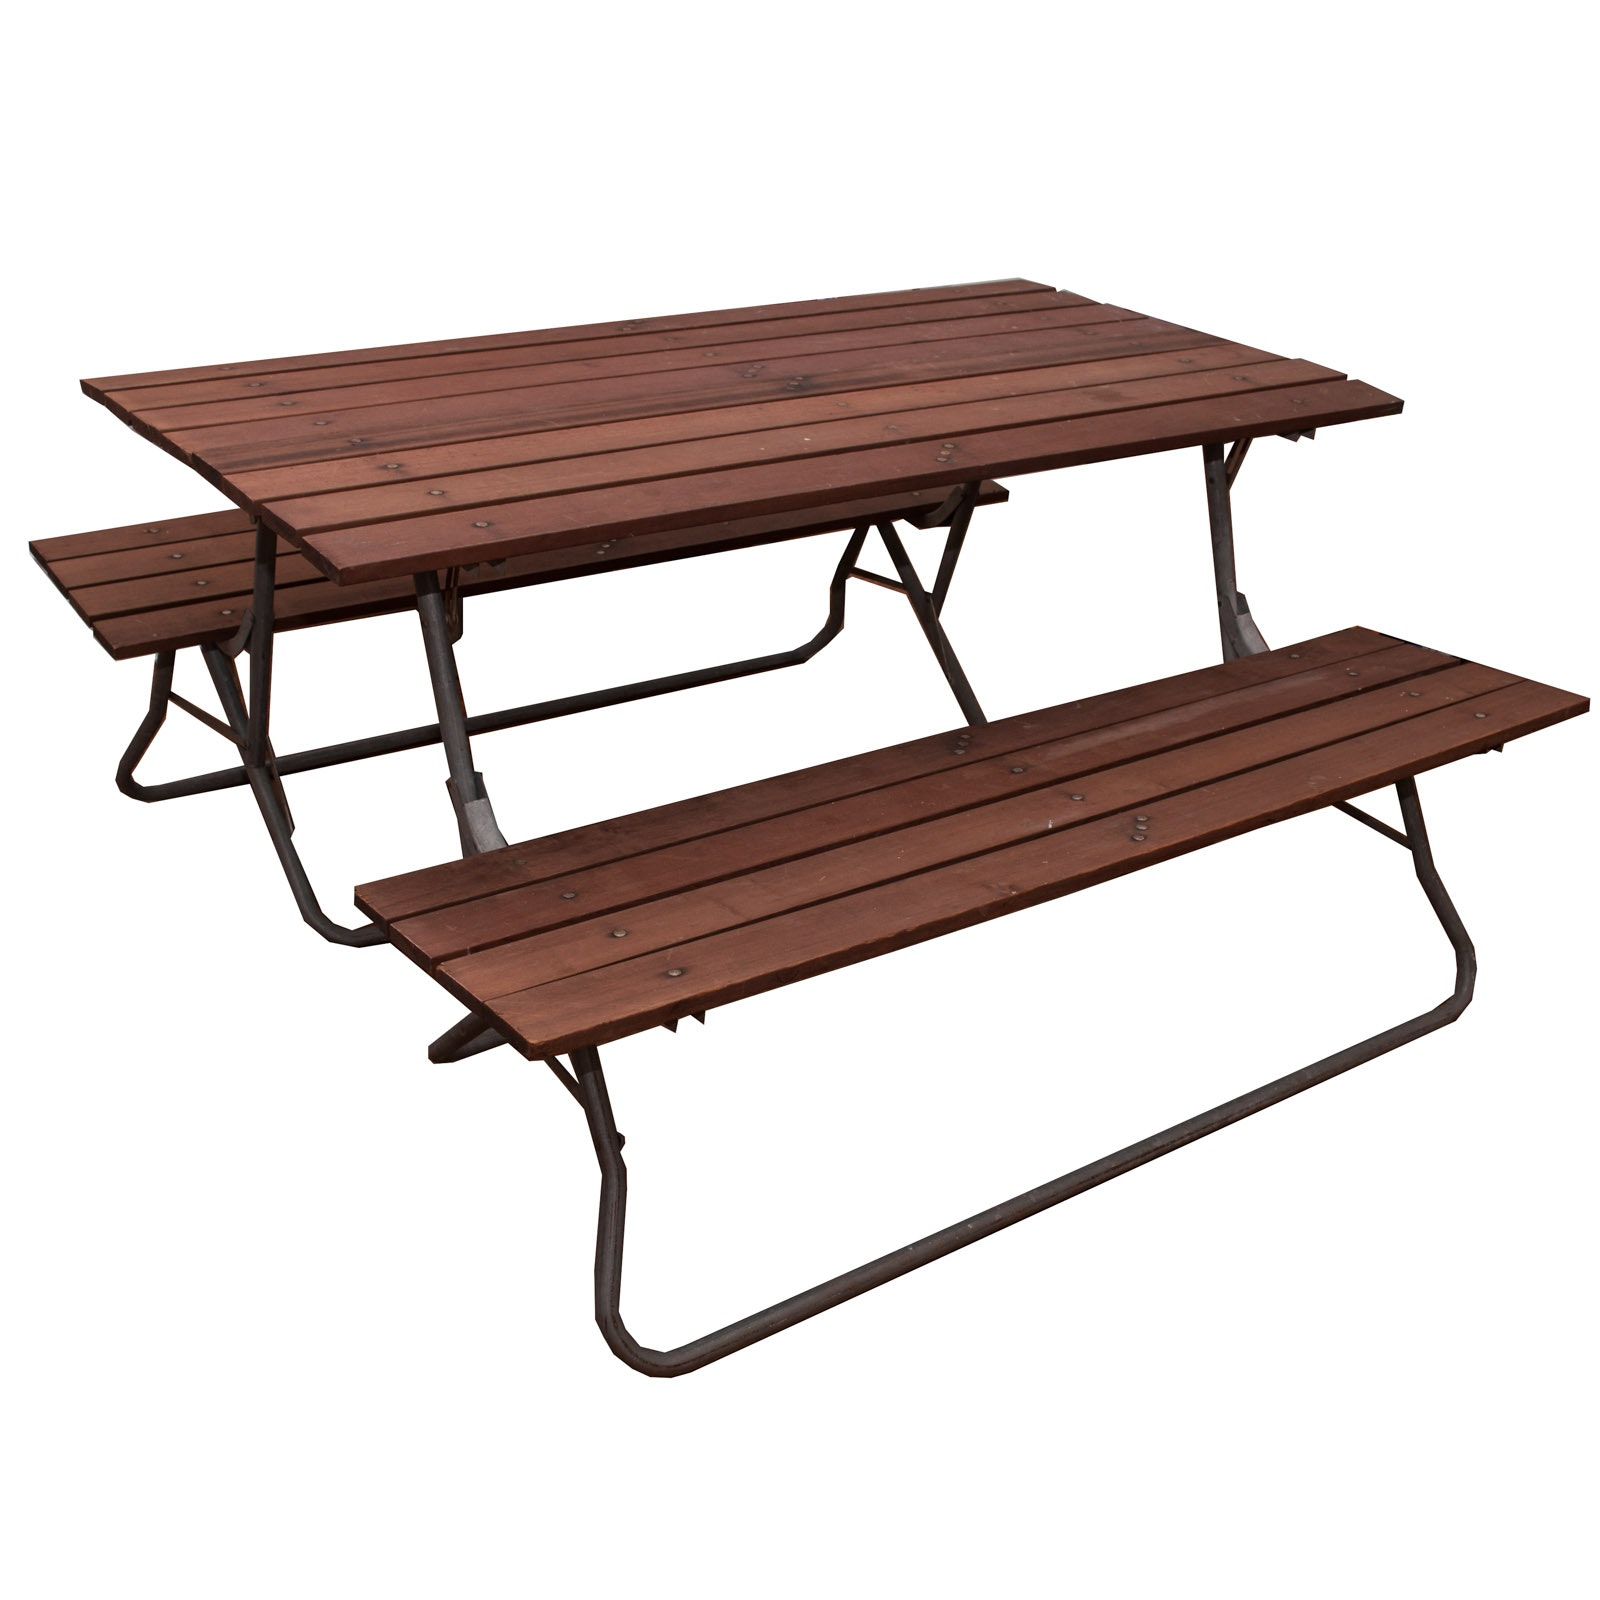 Two Benches Convert To Picnic Table ...